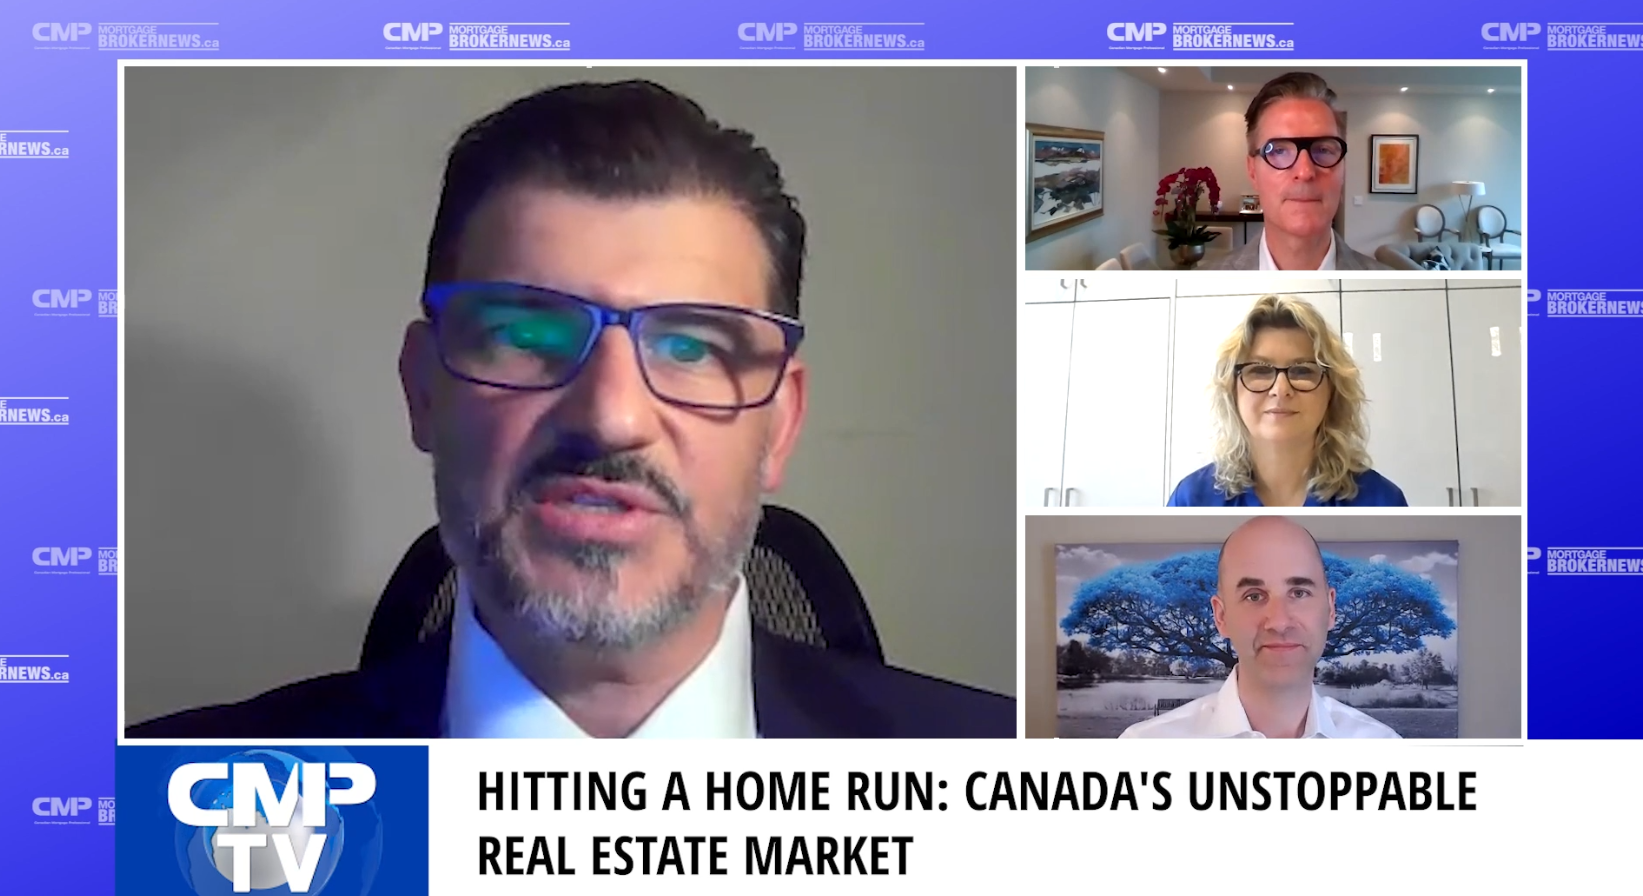 Hitting a home run: Canada's unstoppable real estate market